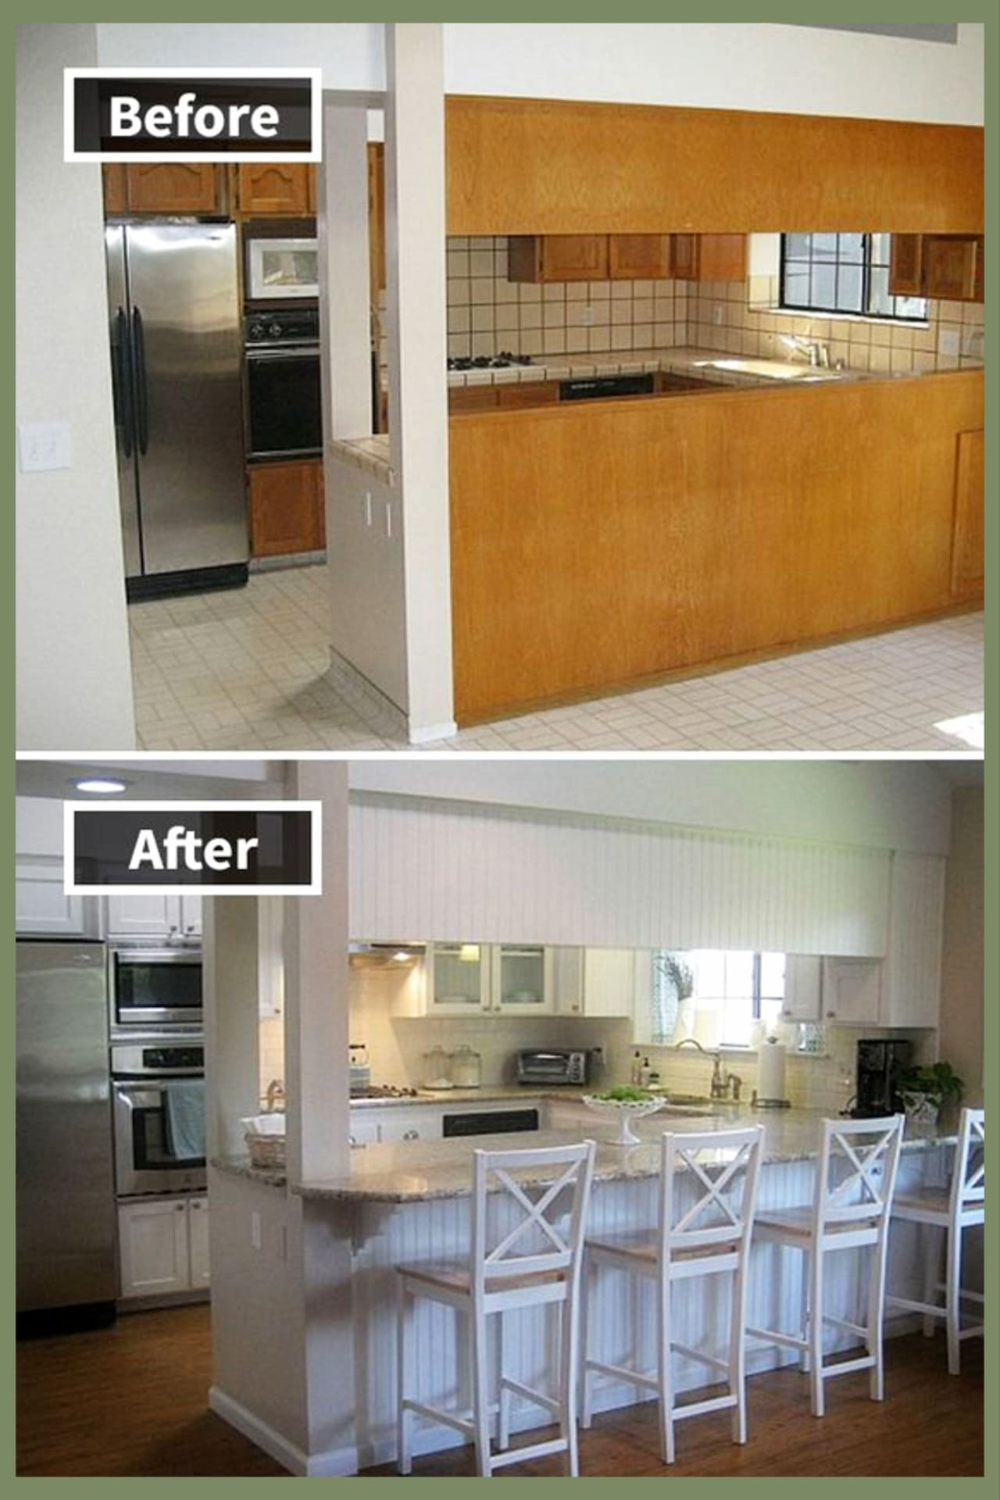 Small Kitchen Ideas On A Budget Before After Remodel Pictures Of Tiny Kitchens Clever Diy Ideas Kitchen Redesign Small Kitchen Ideas On A Budget Kitchen Remodeling Projects